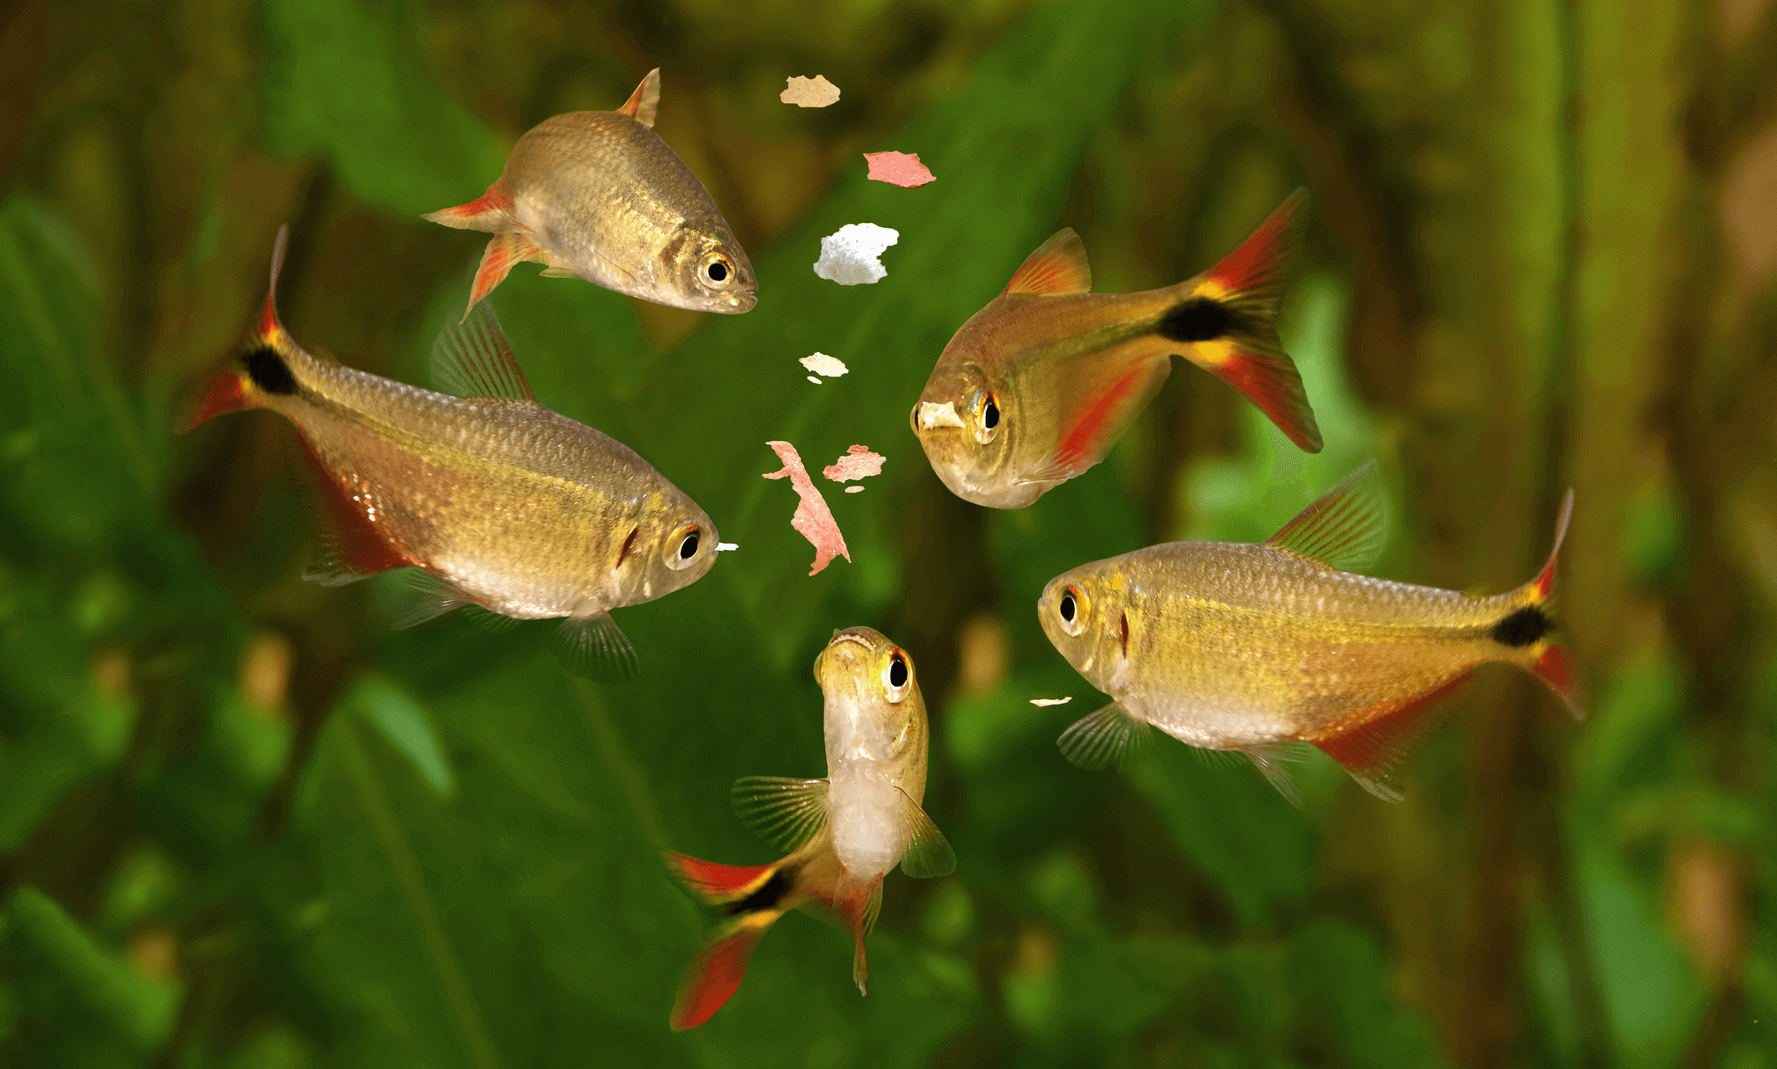 What Do Fish Eat Have You Ever